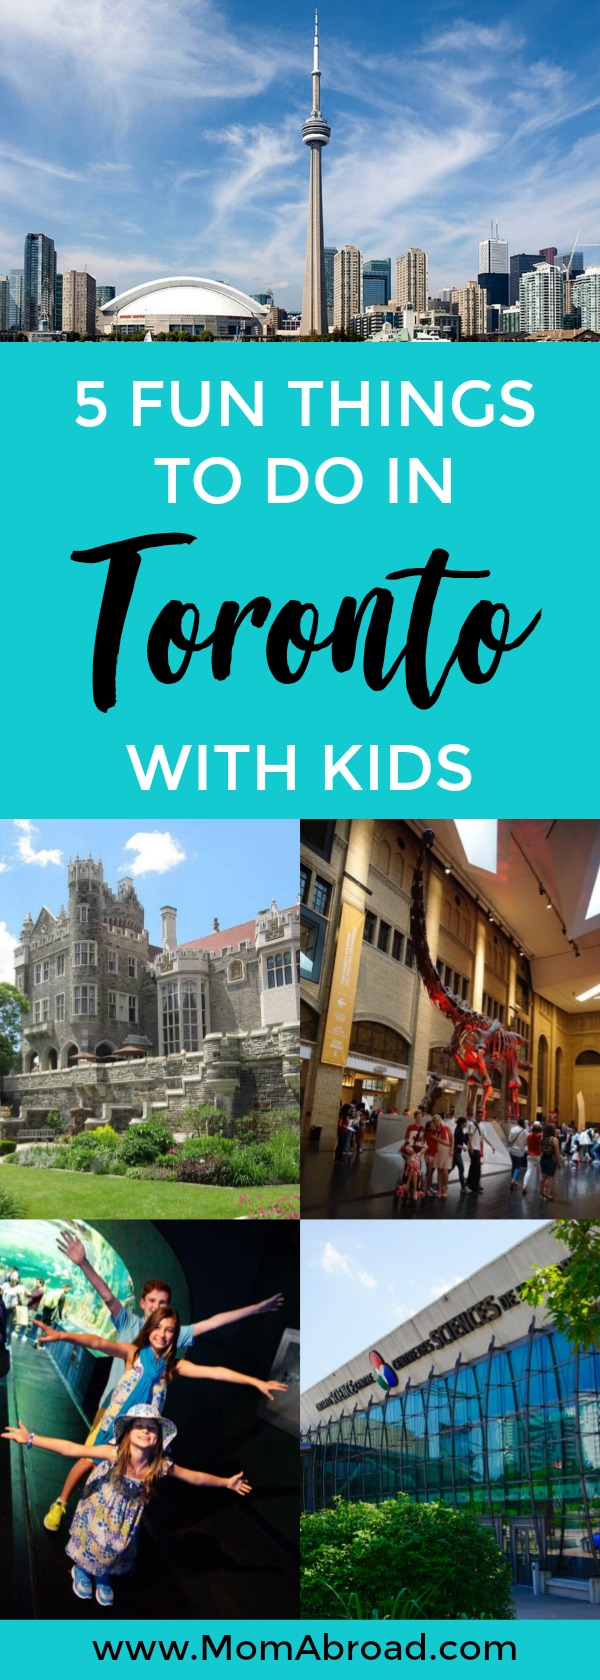 Planning a trip to Toronto with kids? Canada's largest city has so much to offer. Here are 5 fun things to do with kids in Toronto using CitiPASS